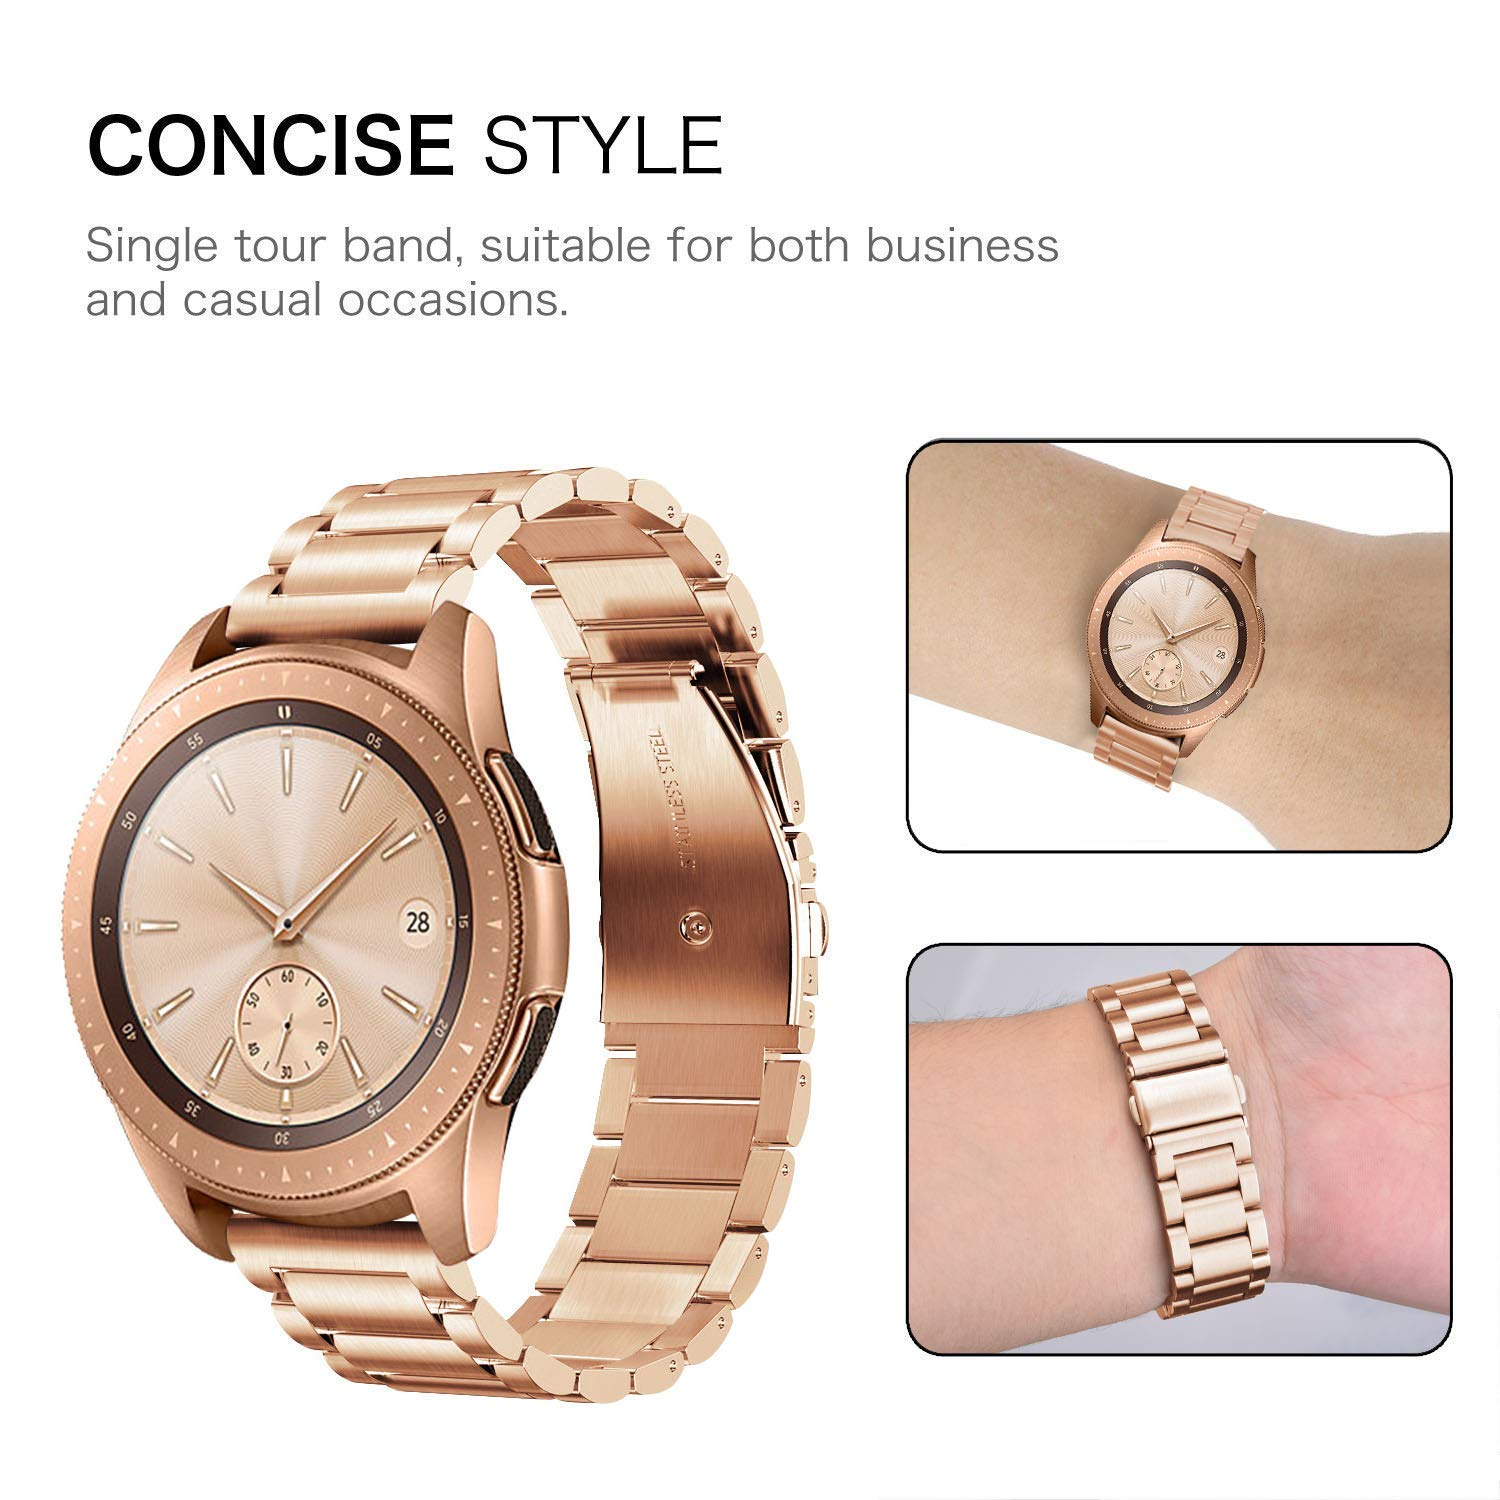 CAGOS Compatible Galaxy Watch 42mm/Galaxy Watch Active Bands Sets, 20mm 2 Pack Stainless Steel Band+Milanese Loop Mesh Bracelet for Samsung Galaxy Watch 42mm /Ticwatch E Smartwatch - Rose Gold by CAGOS (Image #3)